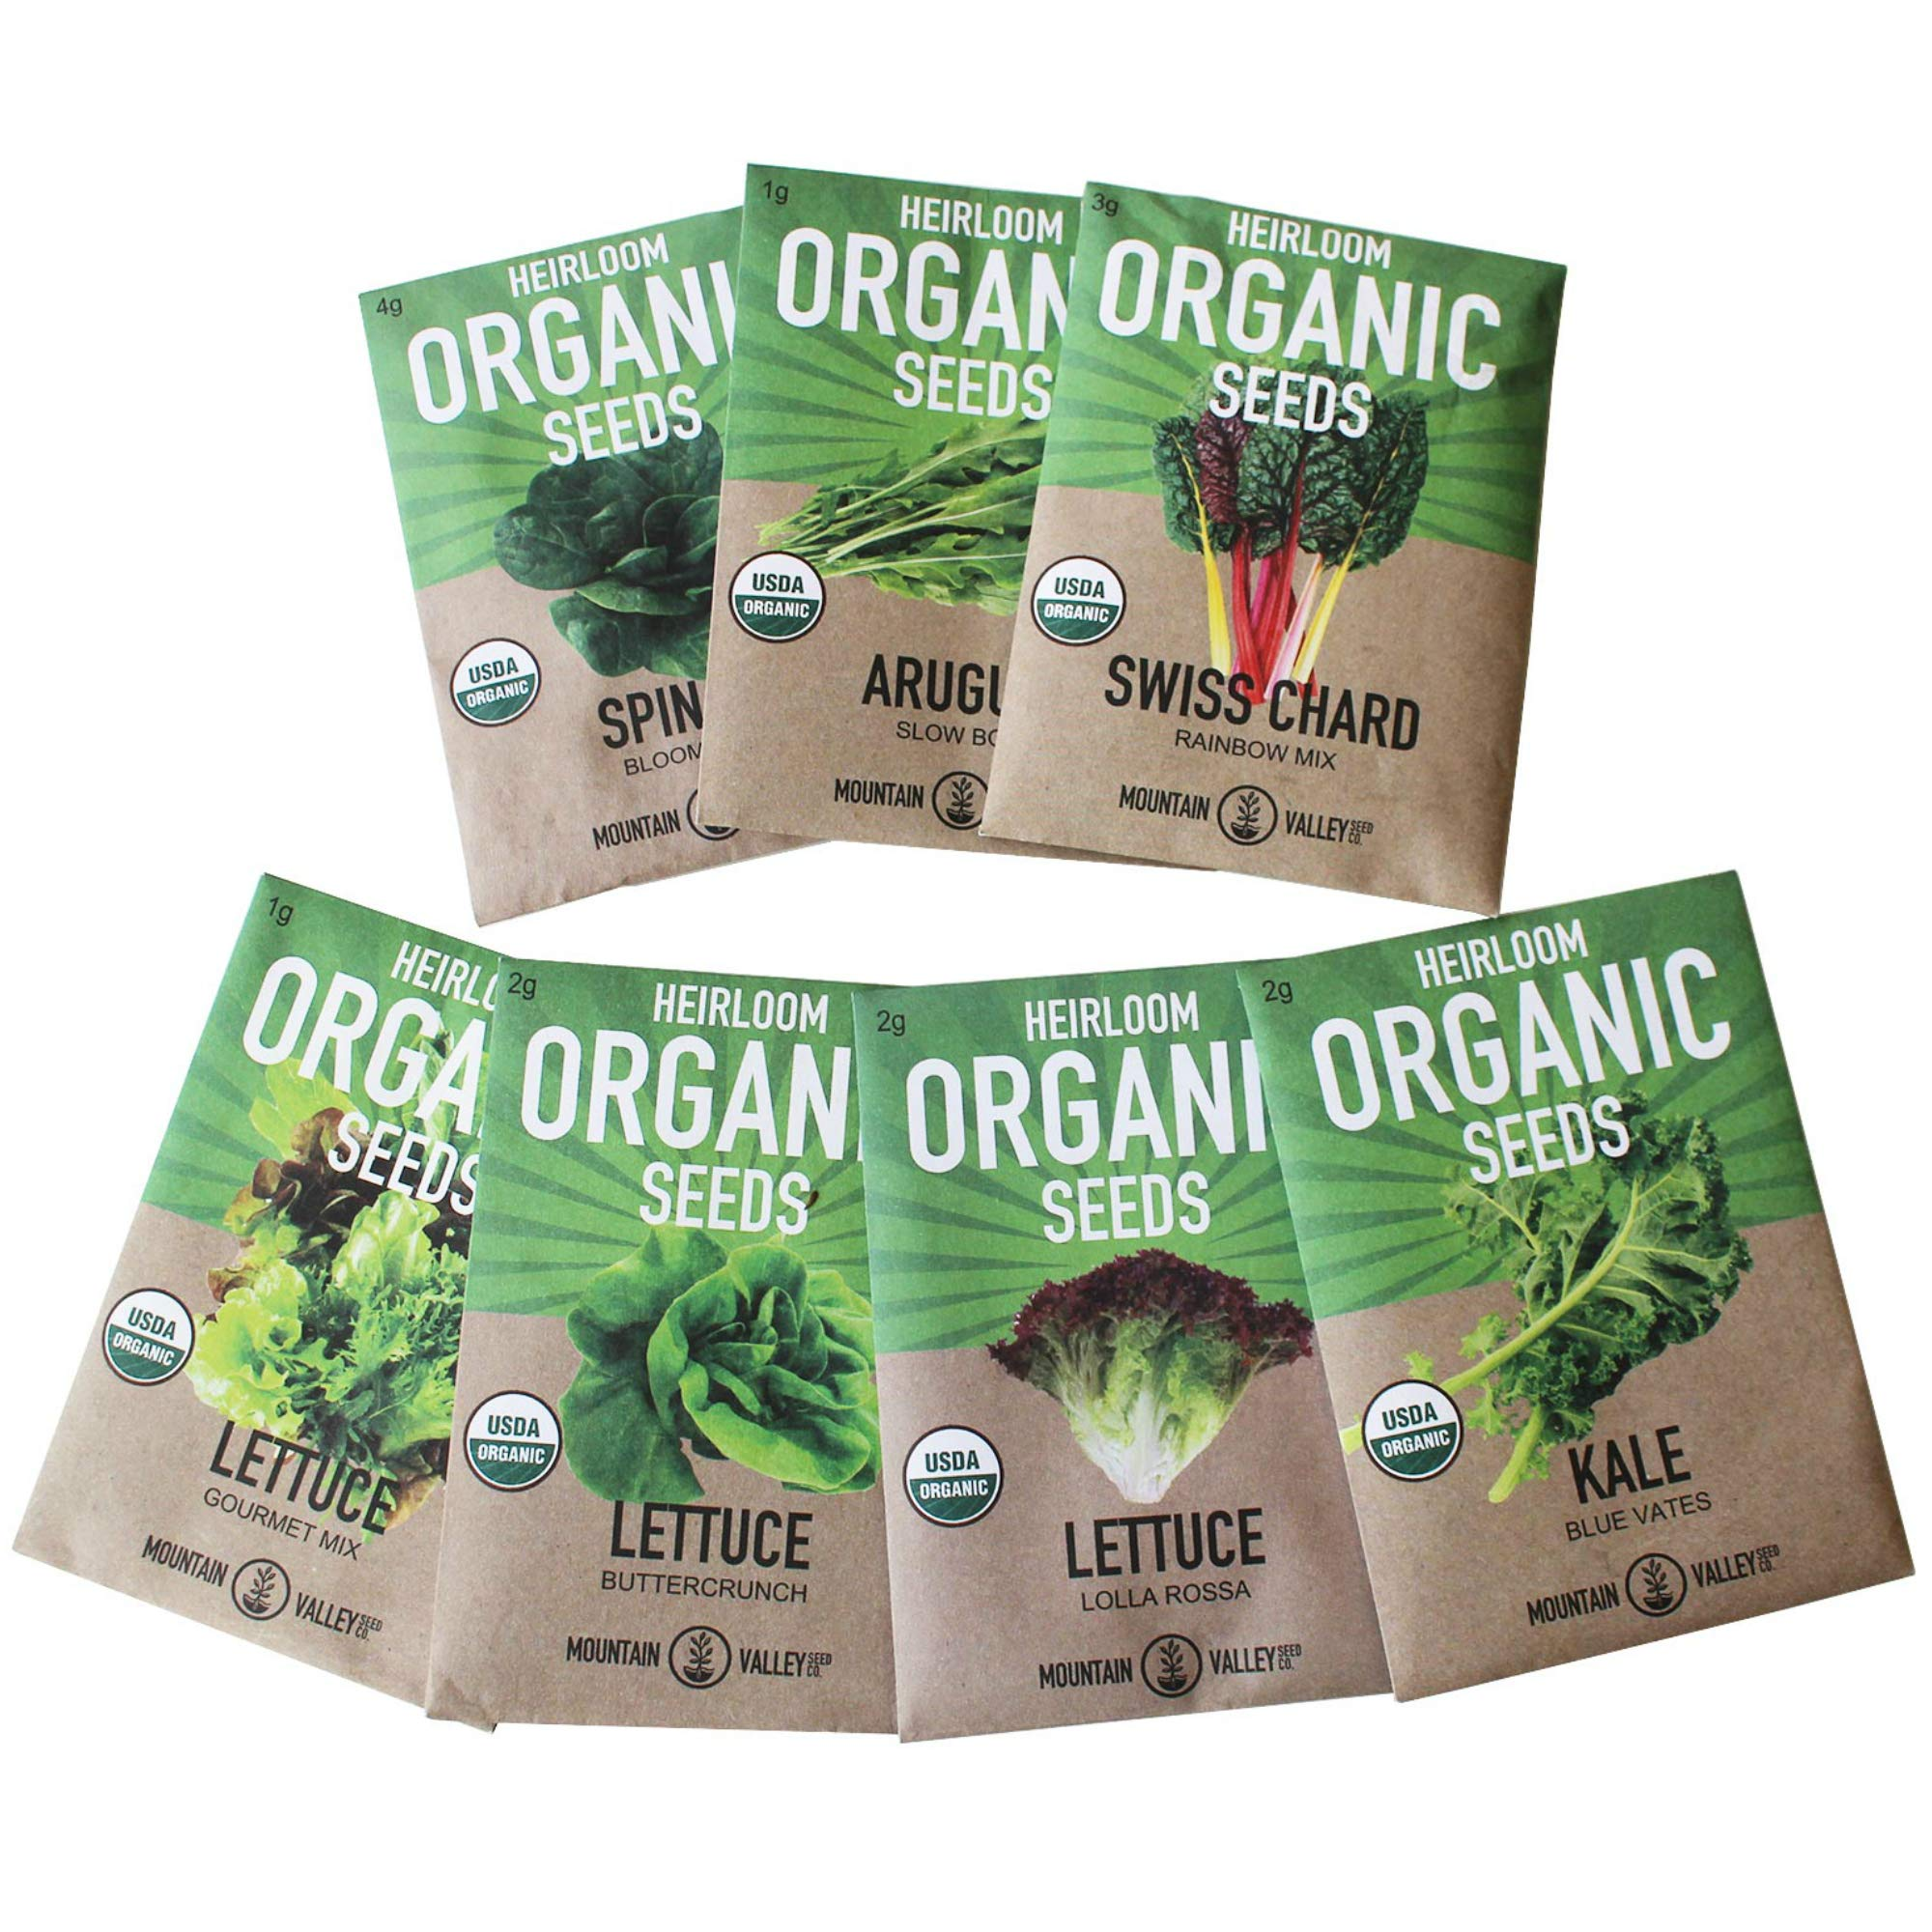 Organic, Heirloom, Non-GMO, Garden Seeds - 7 Varieties of Vegetable Leafy Power Greens - Arugula, Kale, Lolla Rossa Lettuce, Buttercrunch Lettuce, Gourmet Mix Lettuce, Spinach, Swiss Chard by Mountain Valley Seed Company